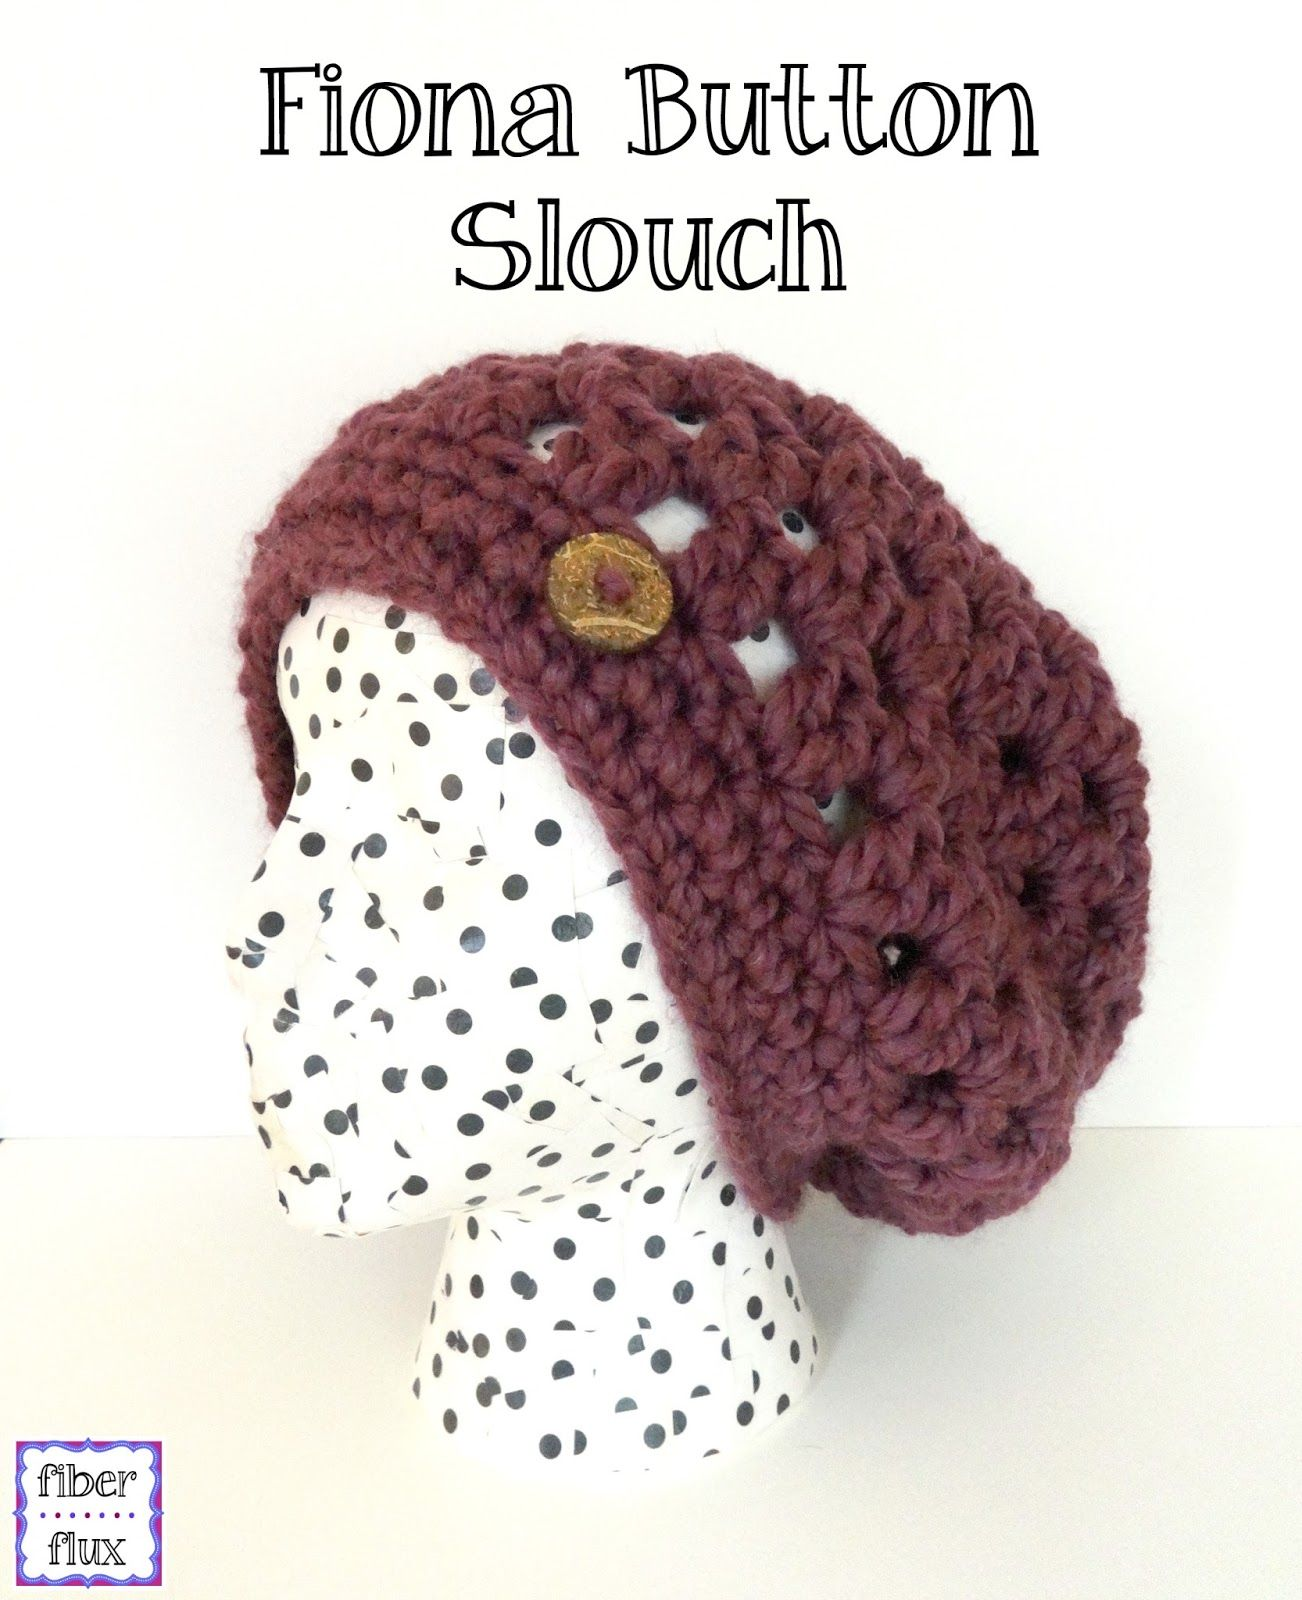 Fiona Button Slouch, free crochet pattern from Fiber Flux | crafts ...